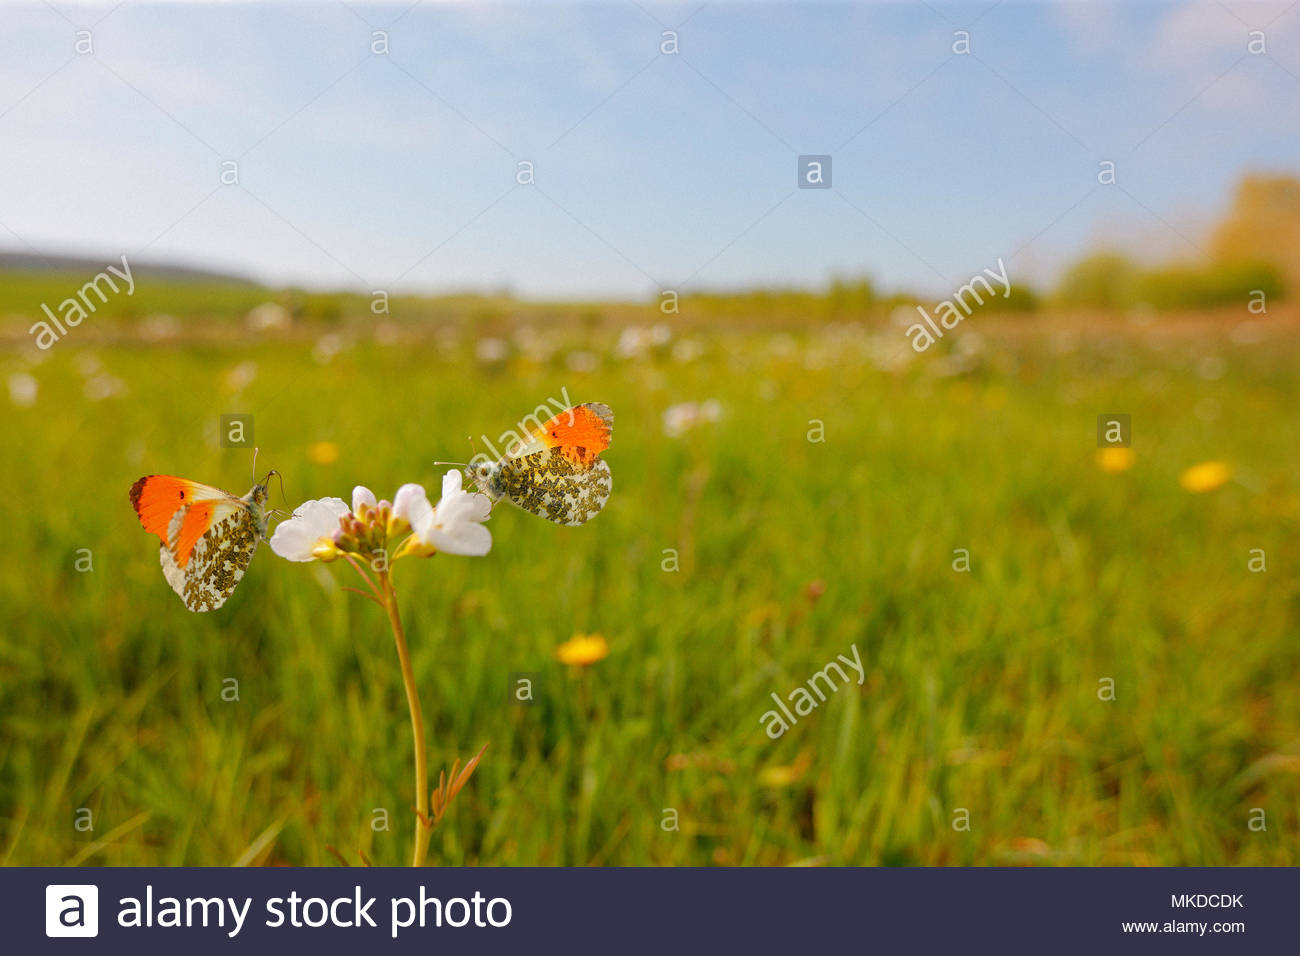 Orange tip (Anthocharis cardamines) males foraging Cuckoo flower (Cardamine pratensis) flowers in a wet meadow in a marsh, in spring, in April, in Picardy - France. Stock Photo